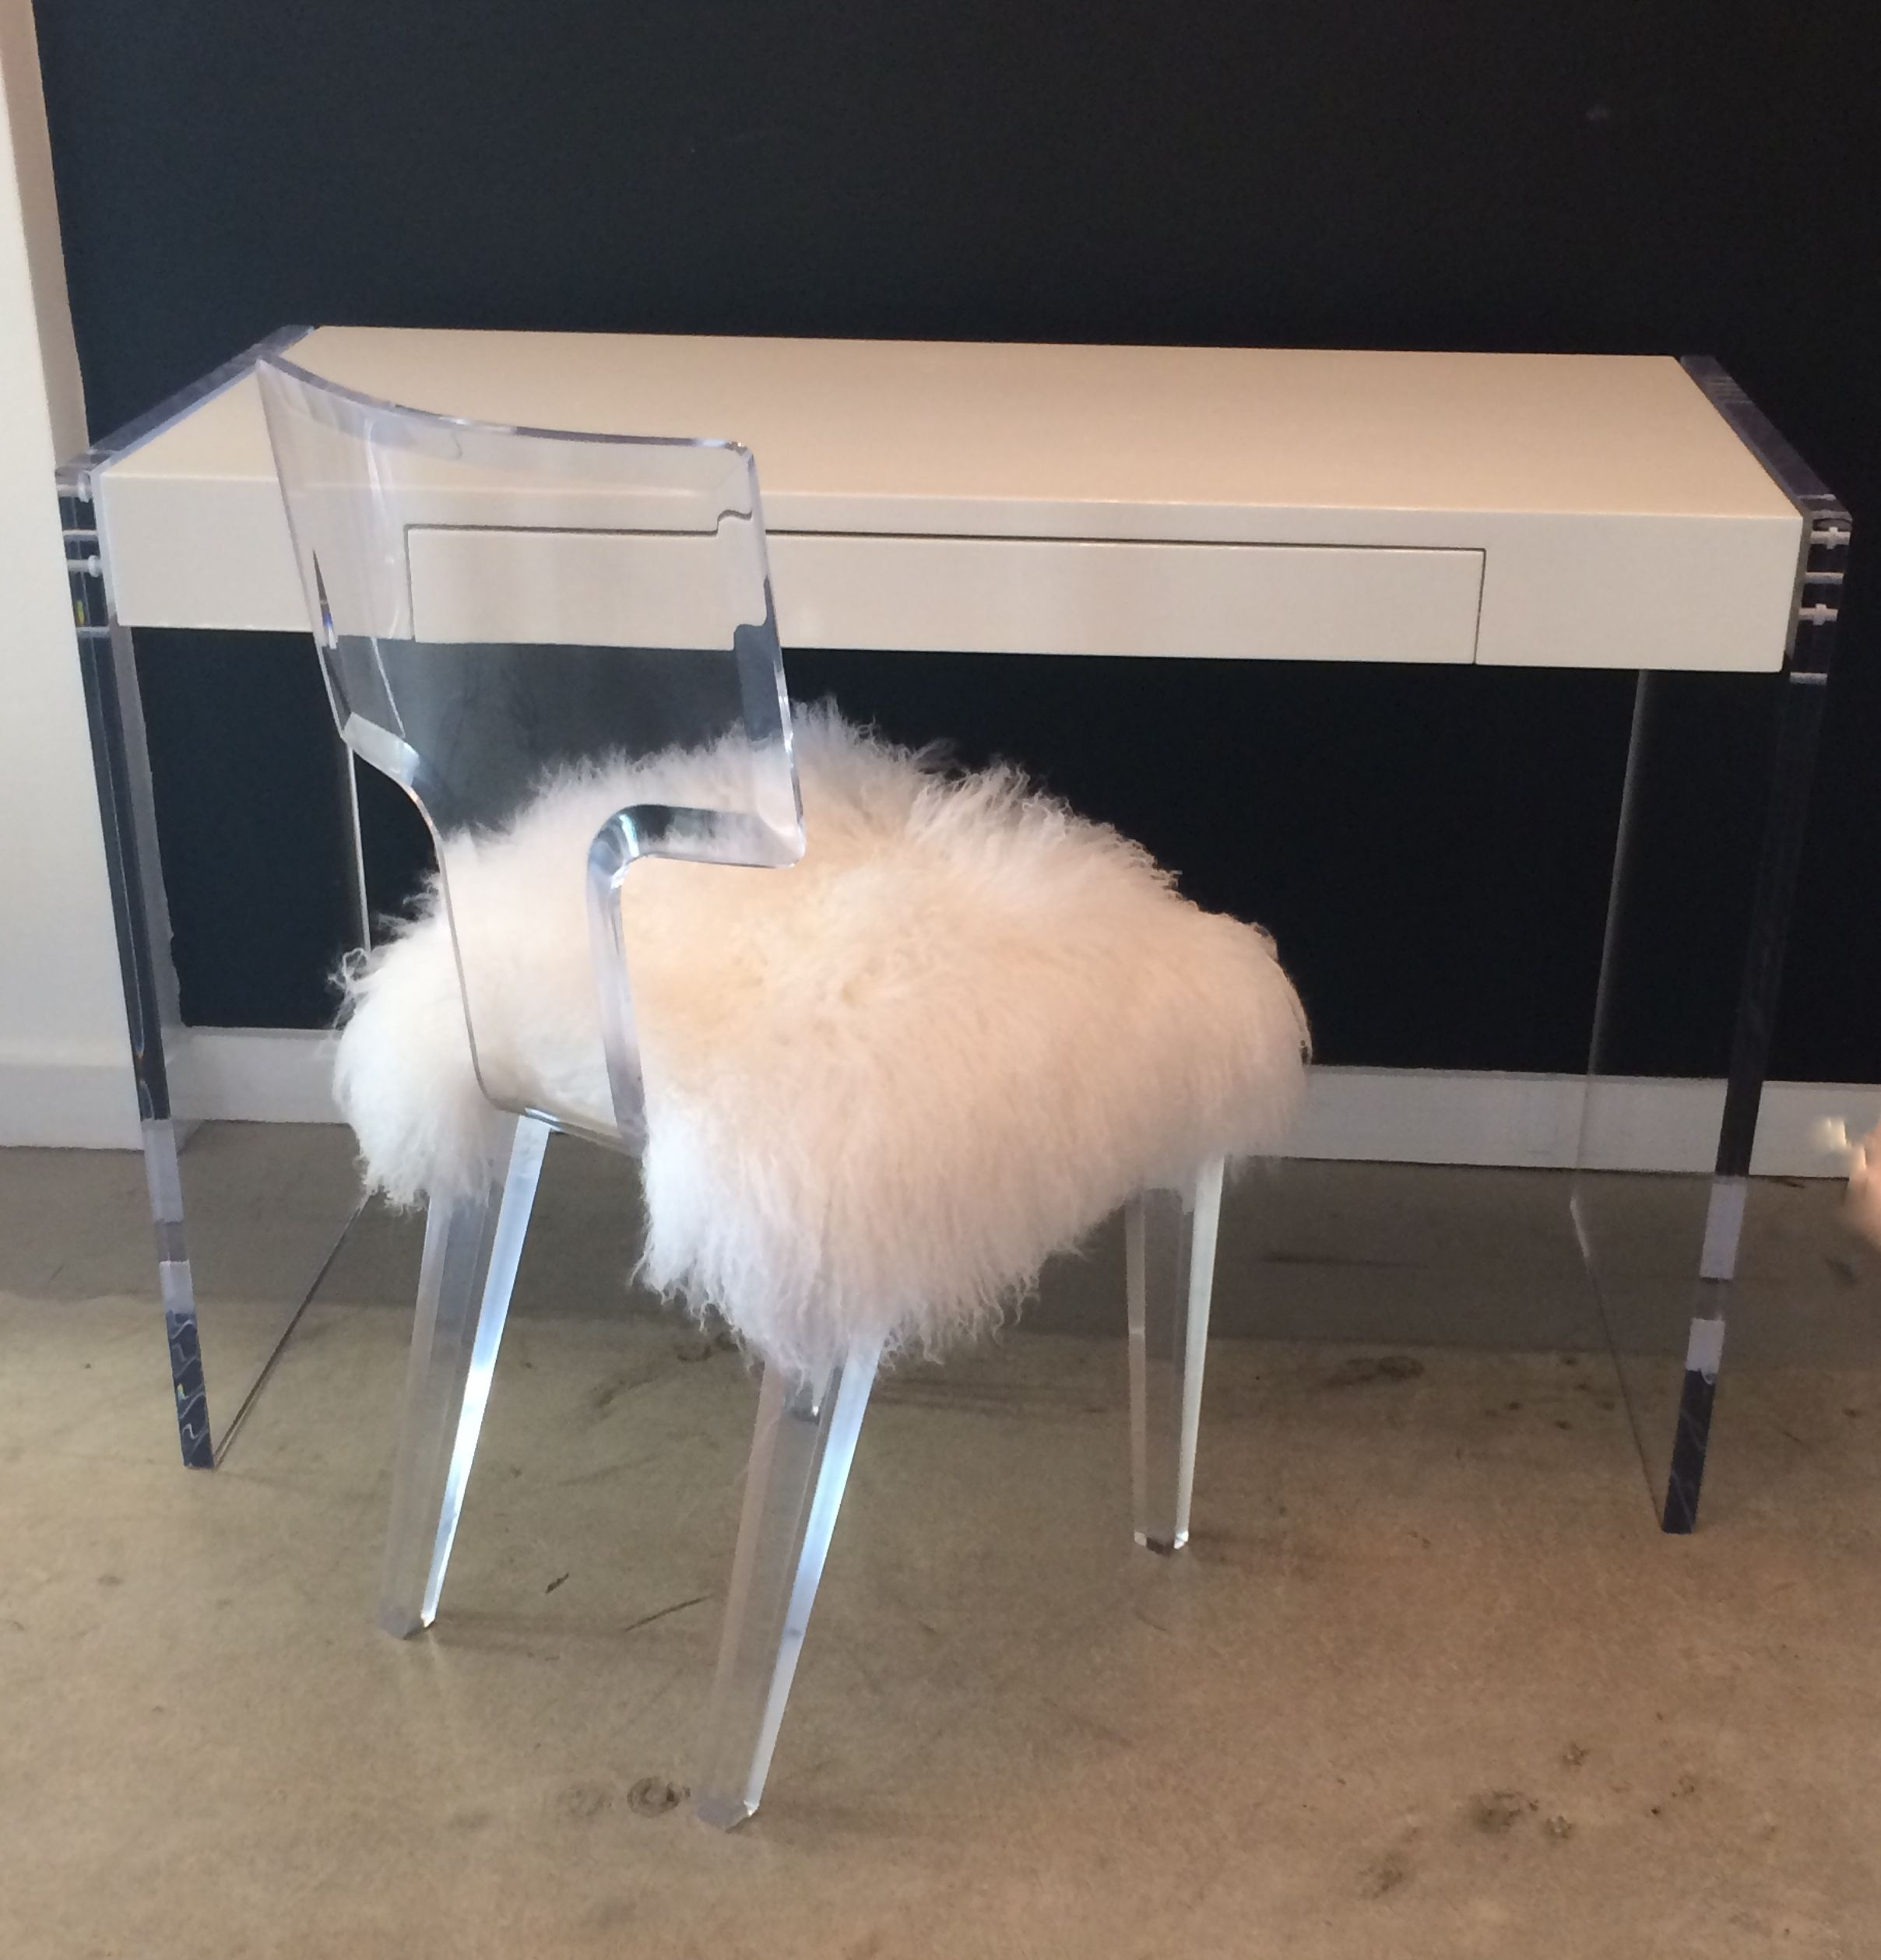 Bowie Desk hanging with the Lola Chair, both by Nisi B